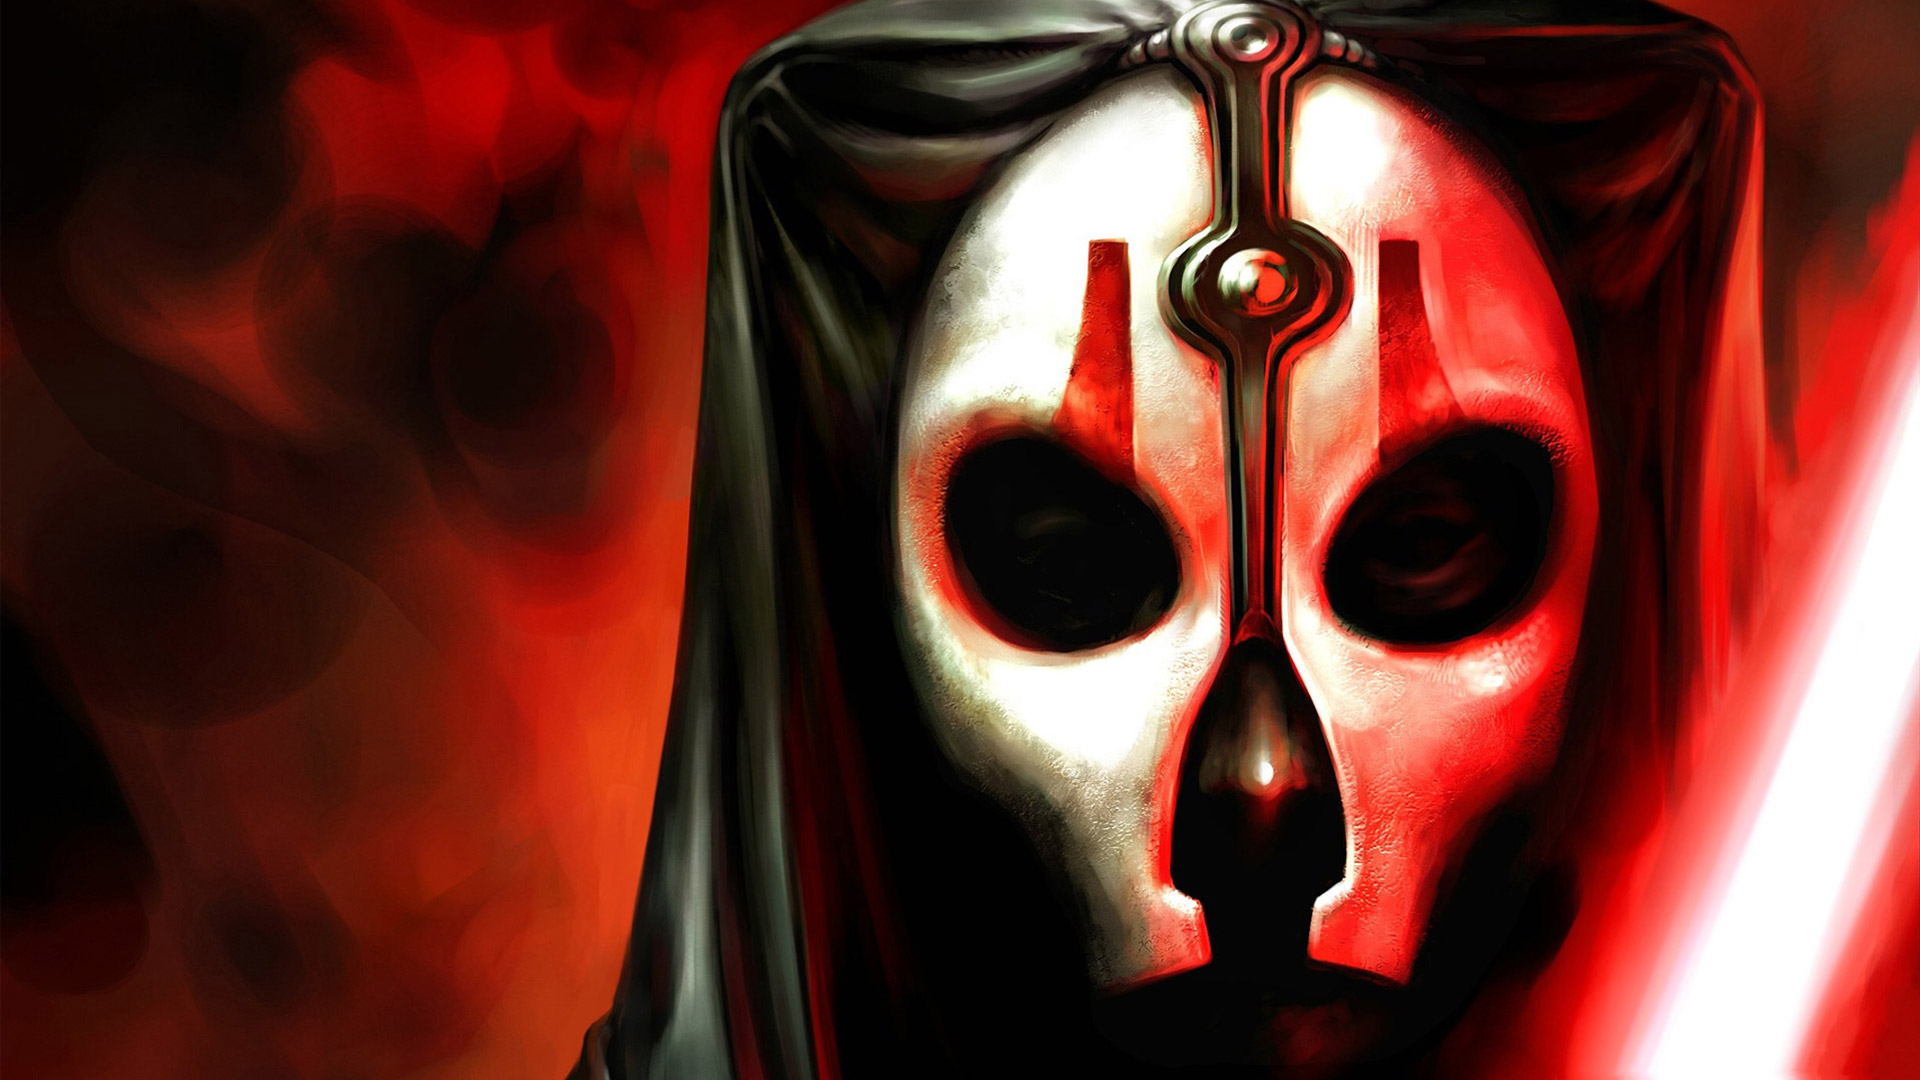 Star Wars: Knights of the Old Republic II � The Sith Lords Wallpaper in 1920x1080